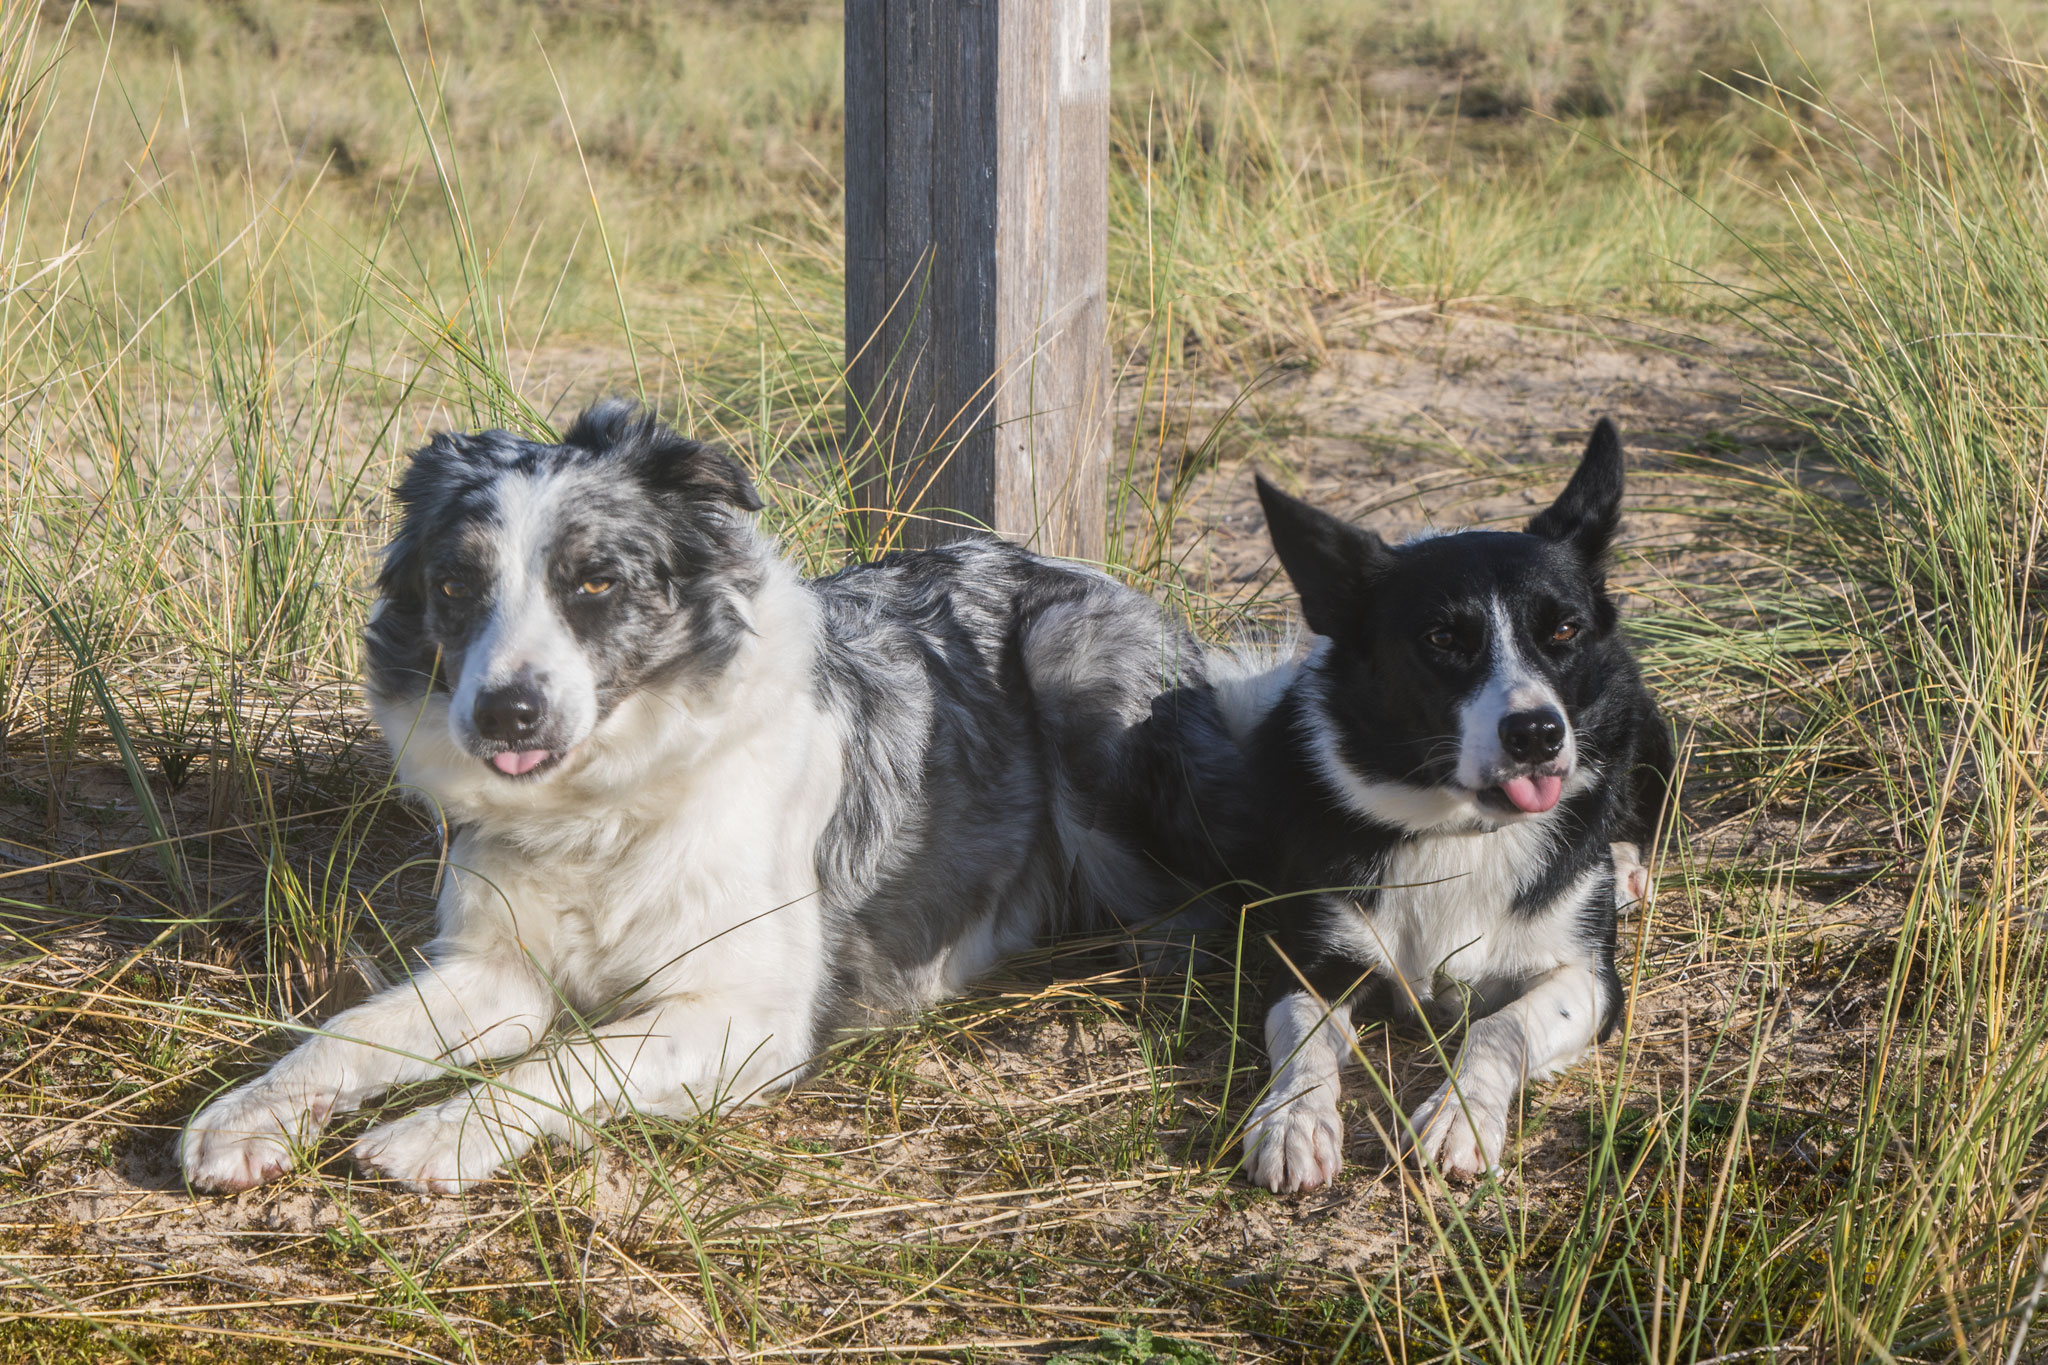 Zwei Border Collies in den Dünen von Hatainville, Cotentin, Manche.